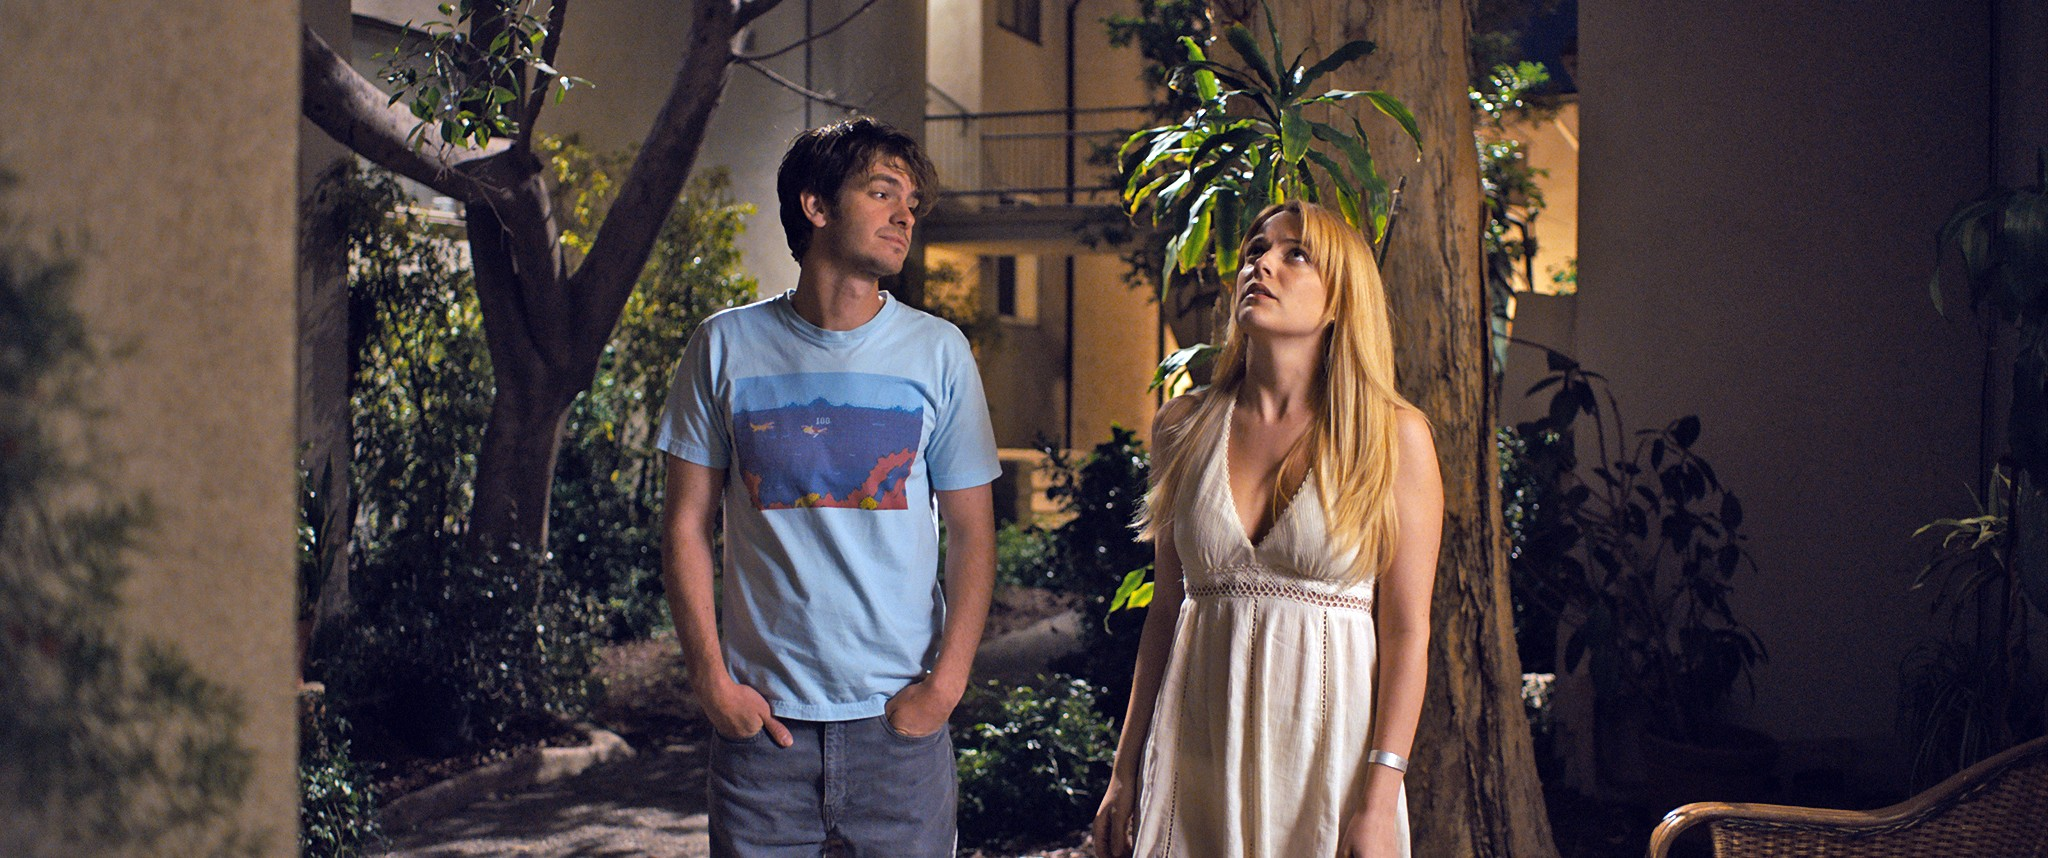 Under the Silver Lake: Scene Image 7